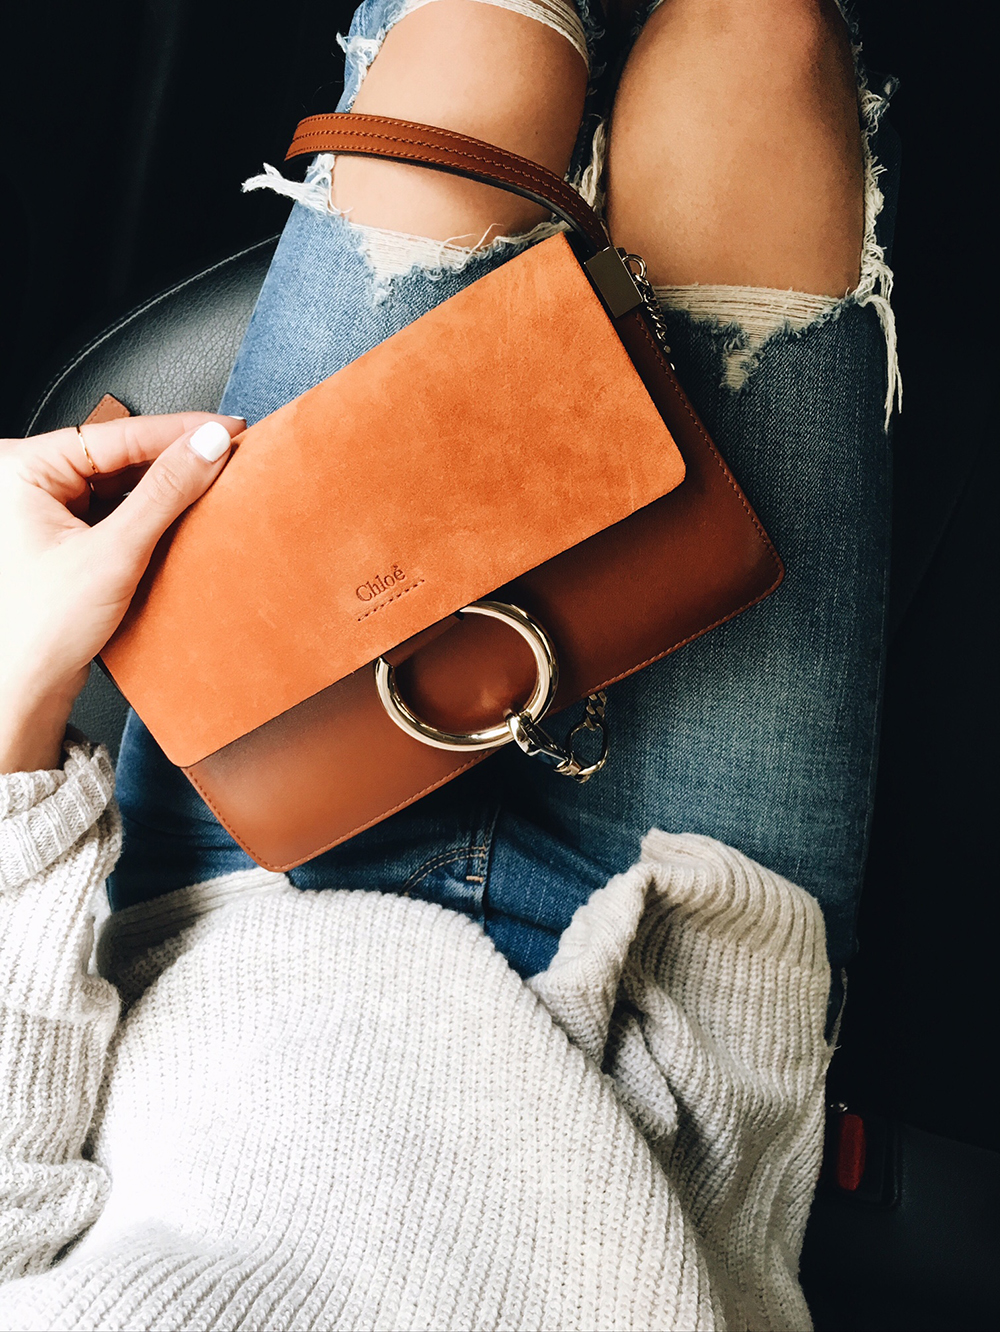 livvyland-blog-olivia-watson-instagram-roundup-december-cozy-chloe-faye-handbag-austin-texas-fashion-blogger-tan-mini-sweater-levi-jeans